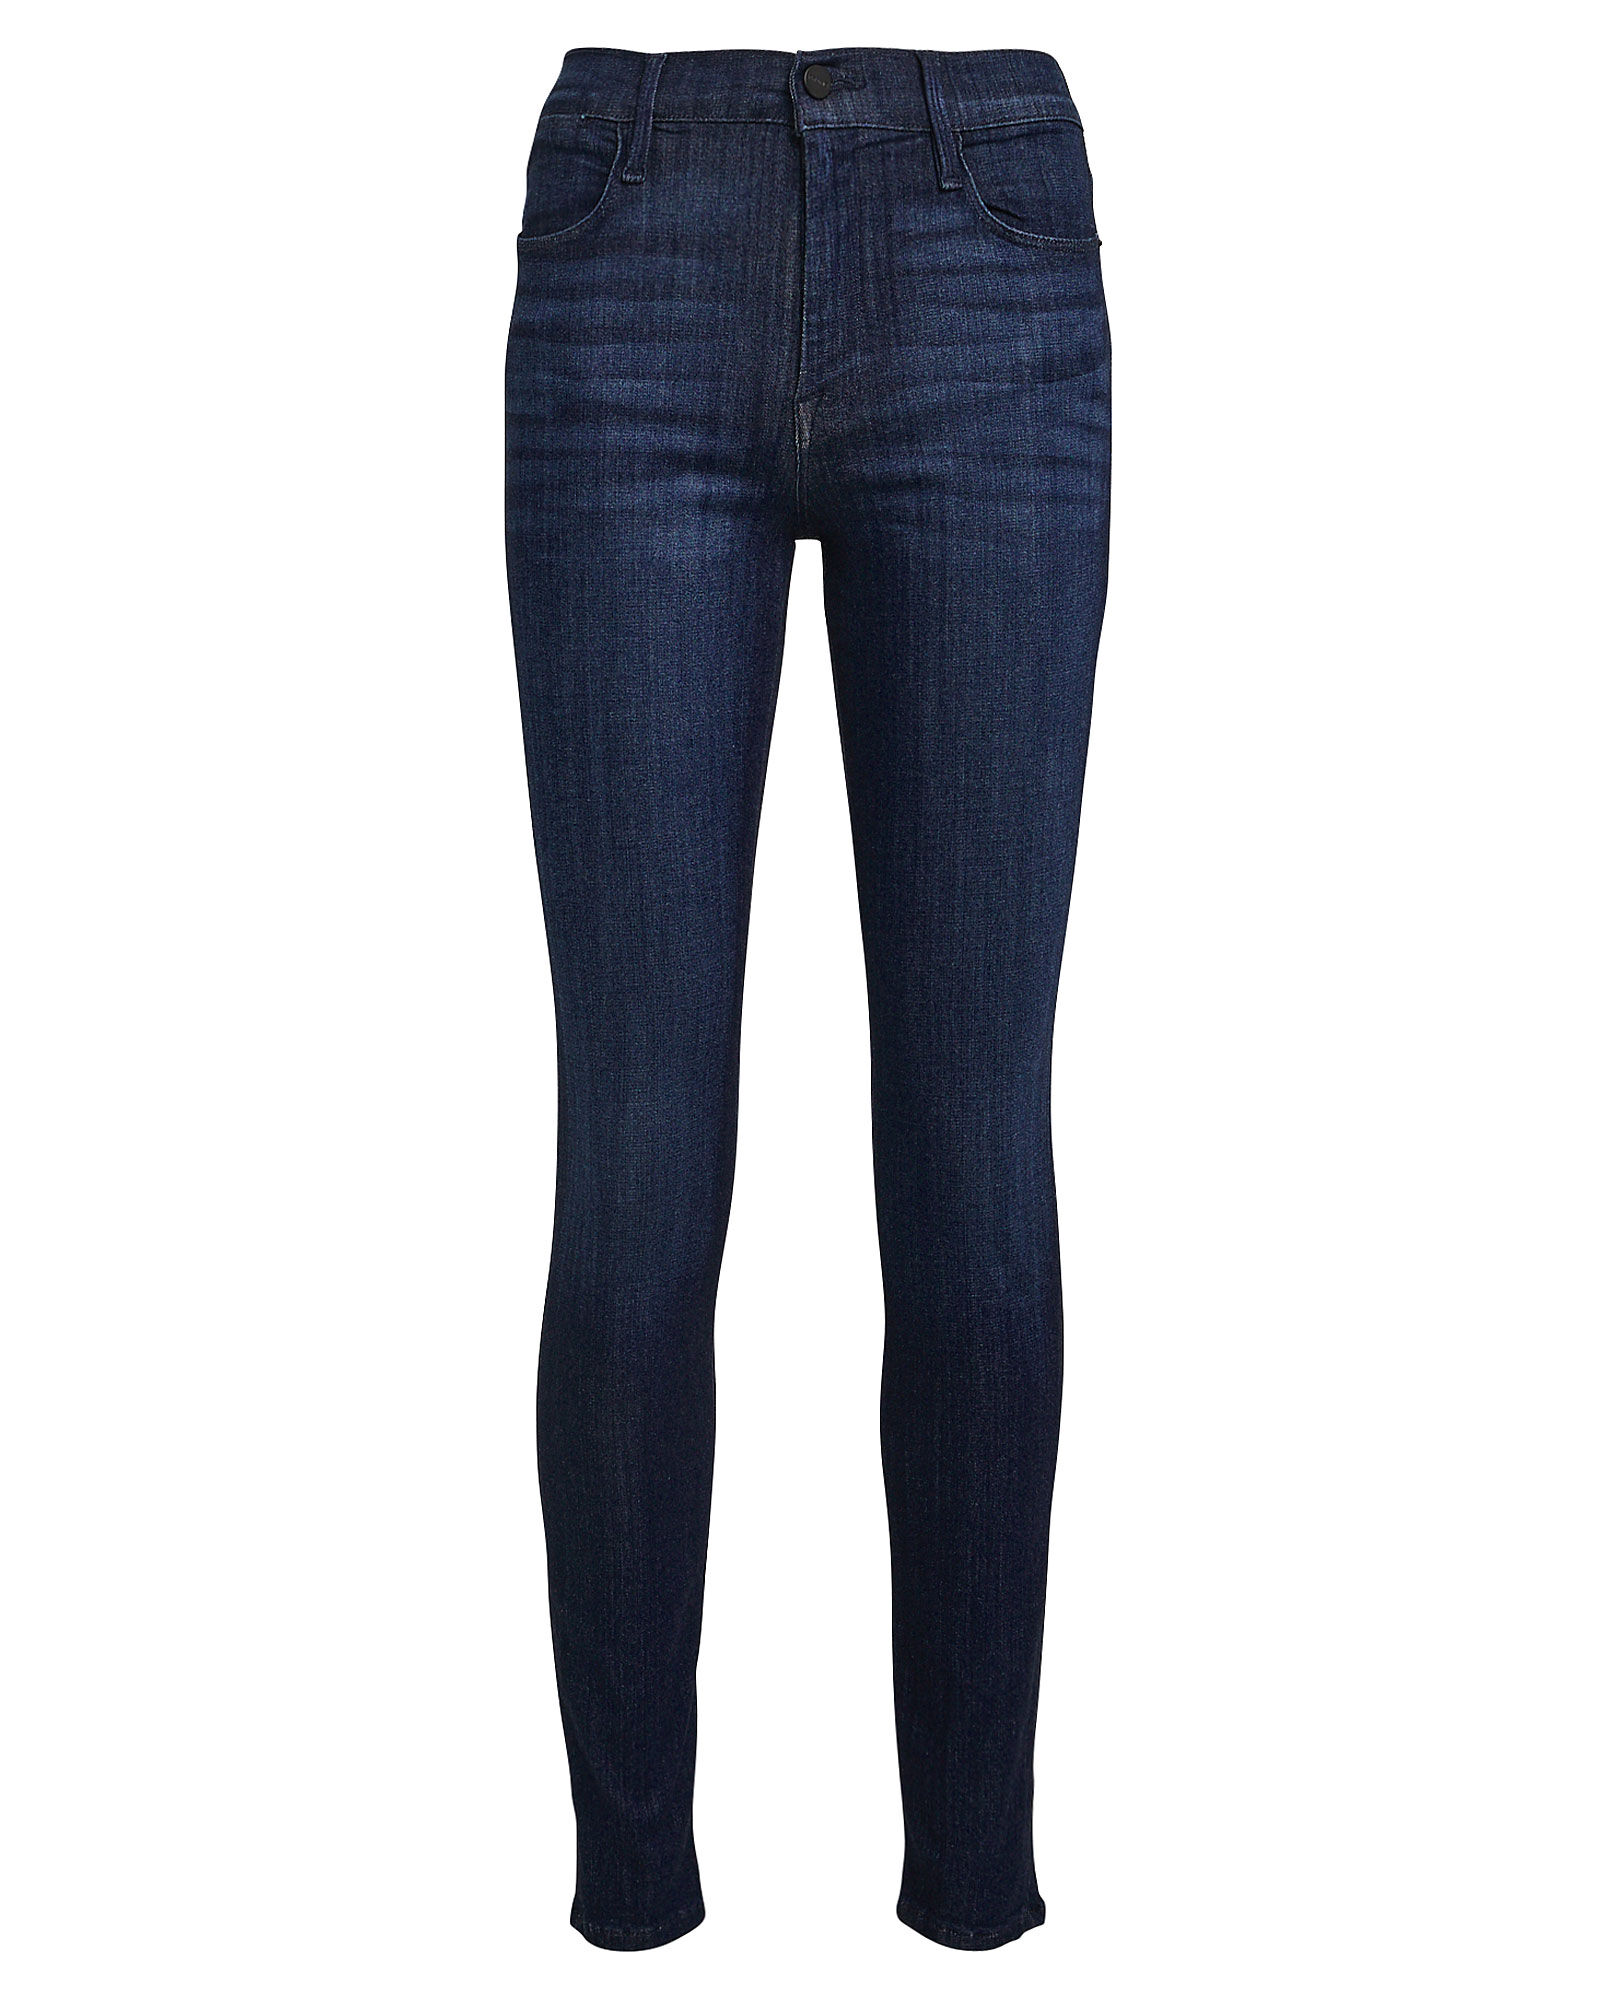 Le High Skinny Jeans, DENIM, hi-res